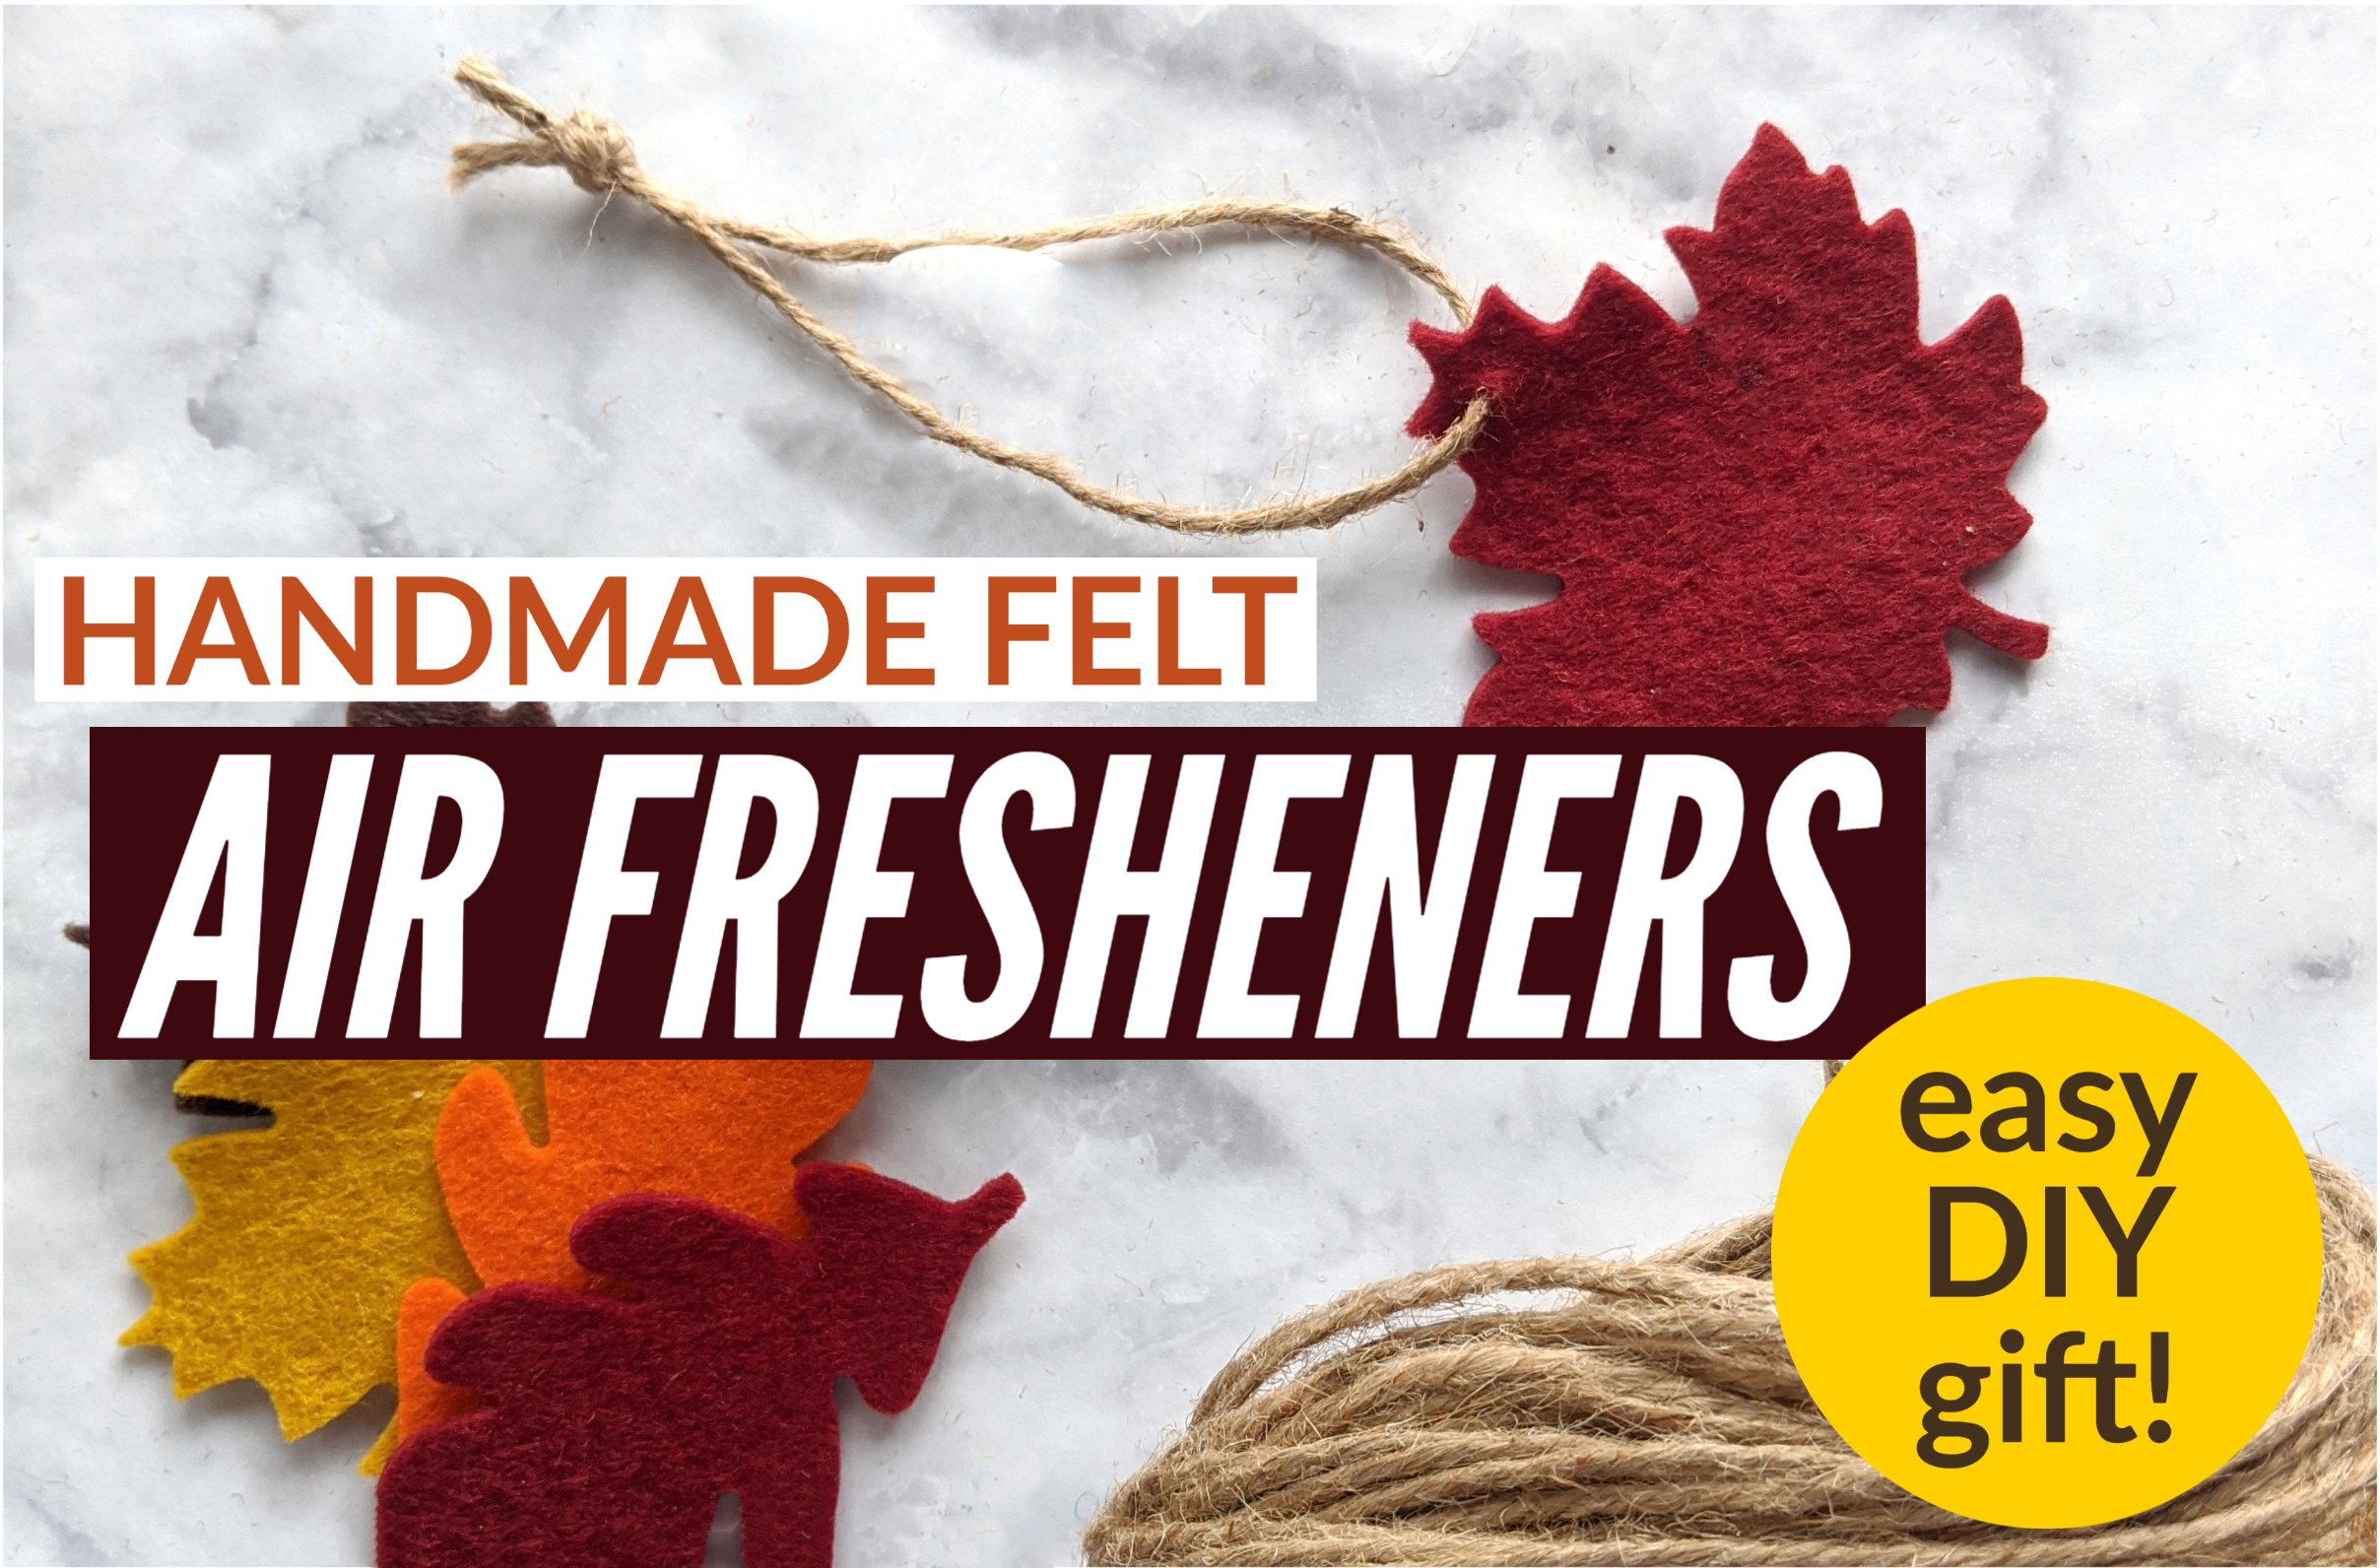 homemade felt diffusers make great gifts